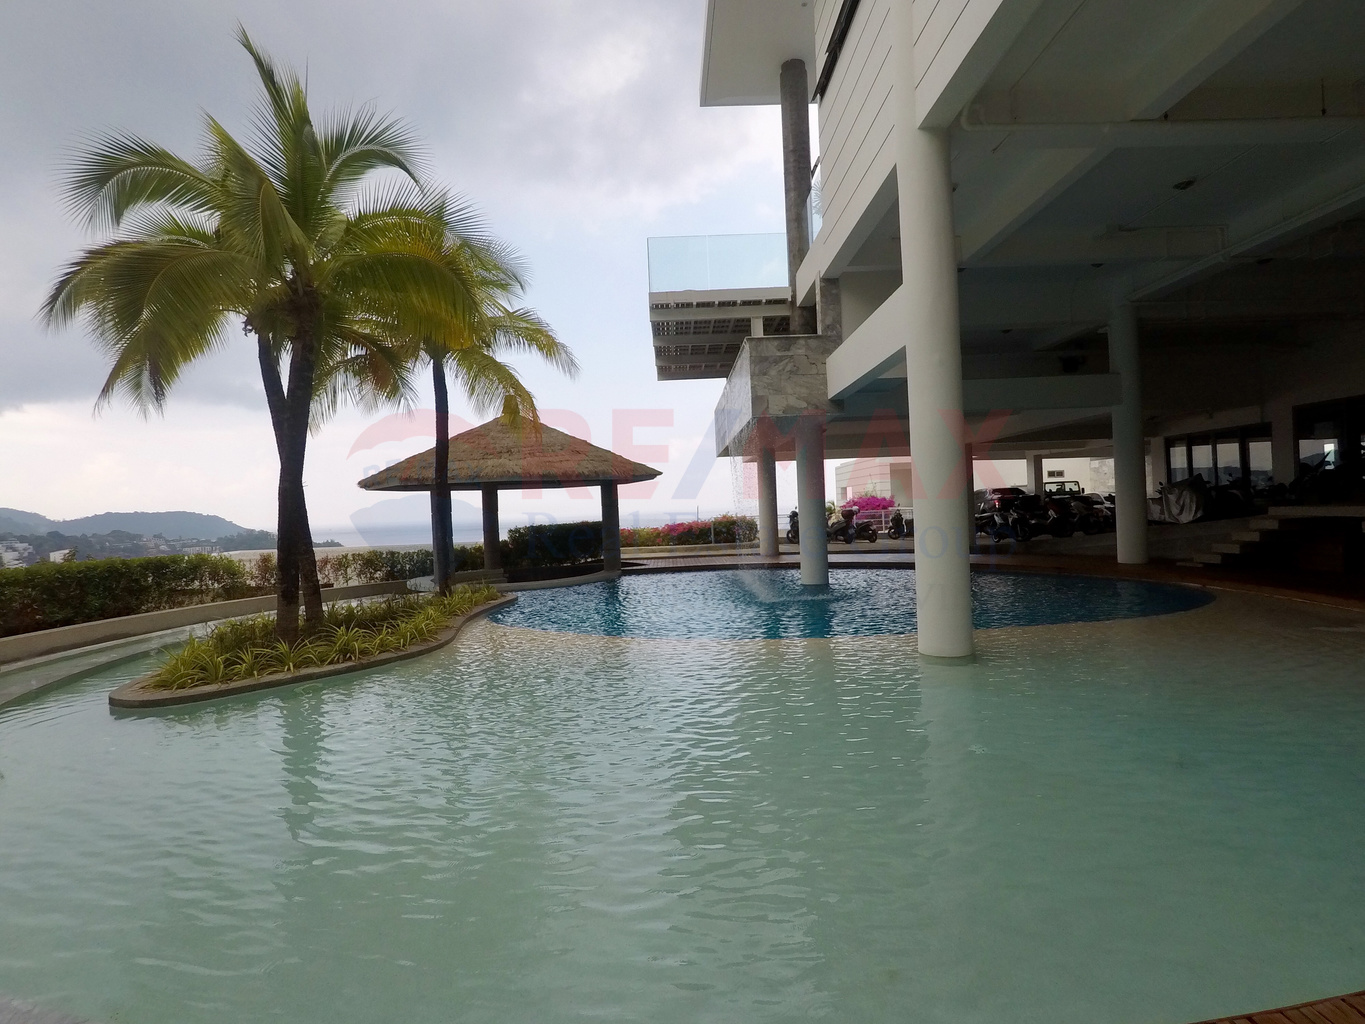 KARON 3 BEDROOM CONDO/APARTMENT FOR SALE